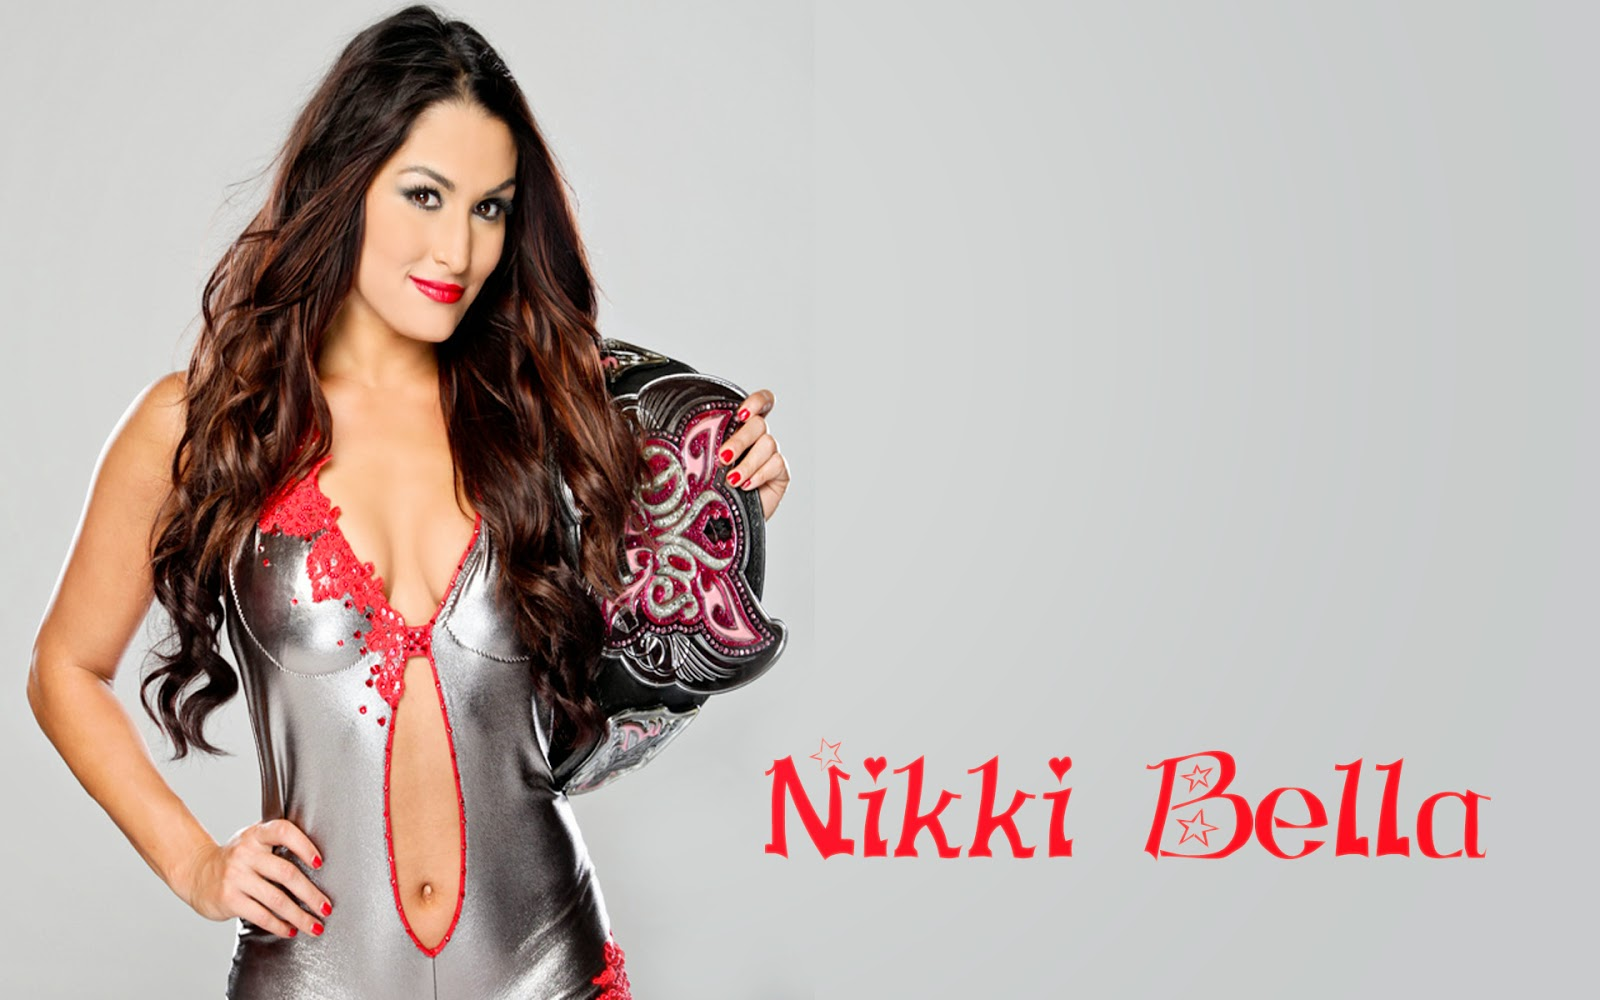 Sexy Images Of Nikki Bella